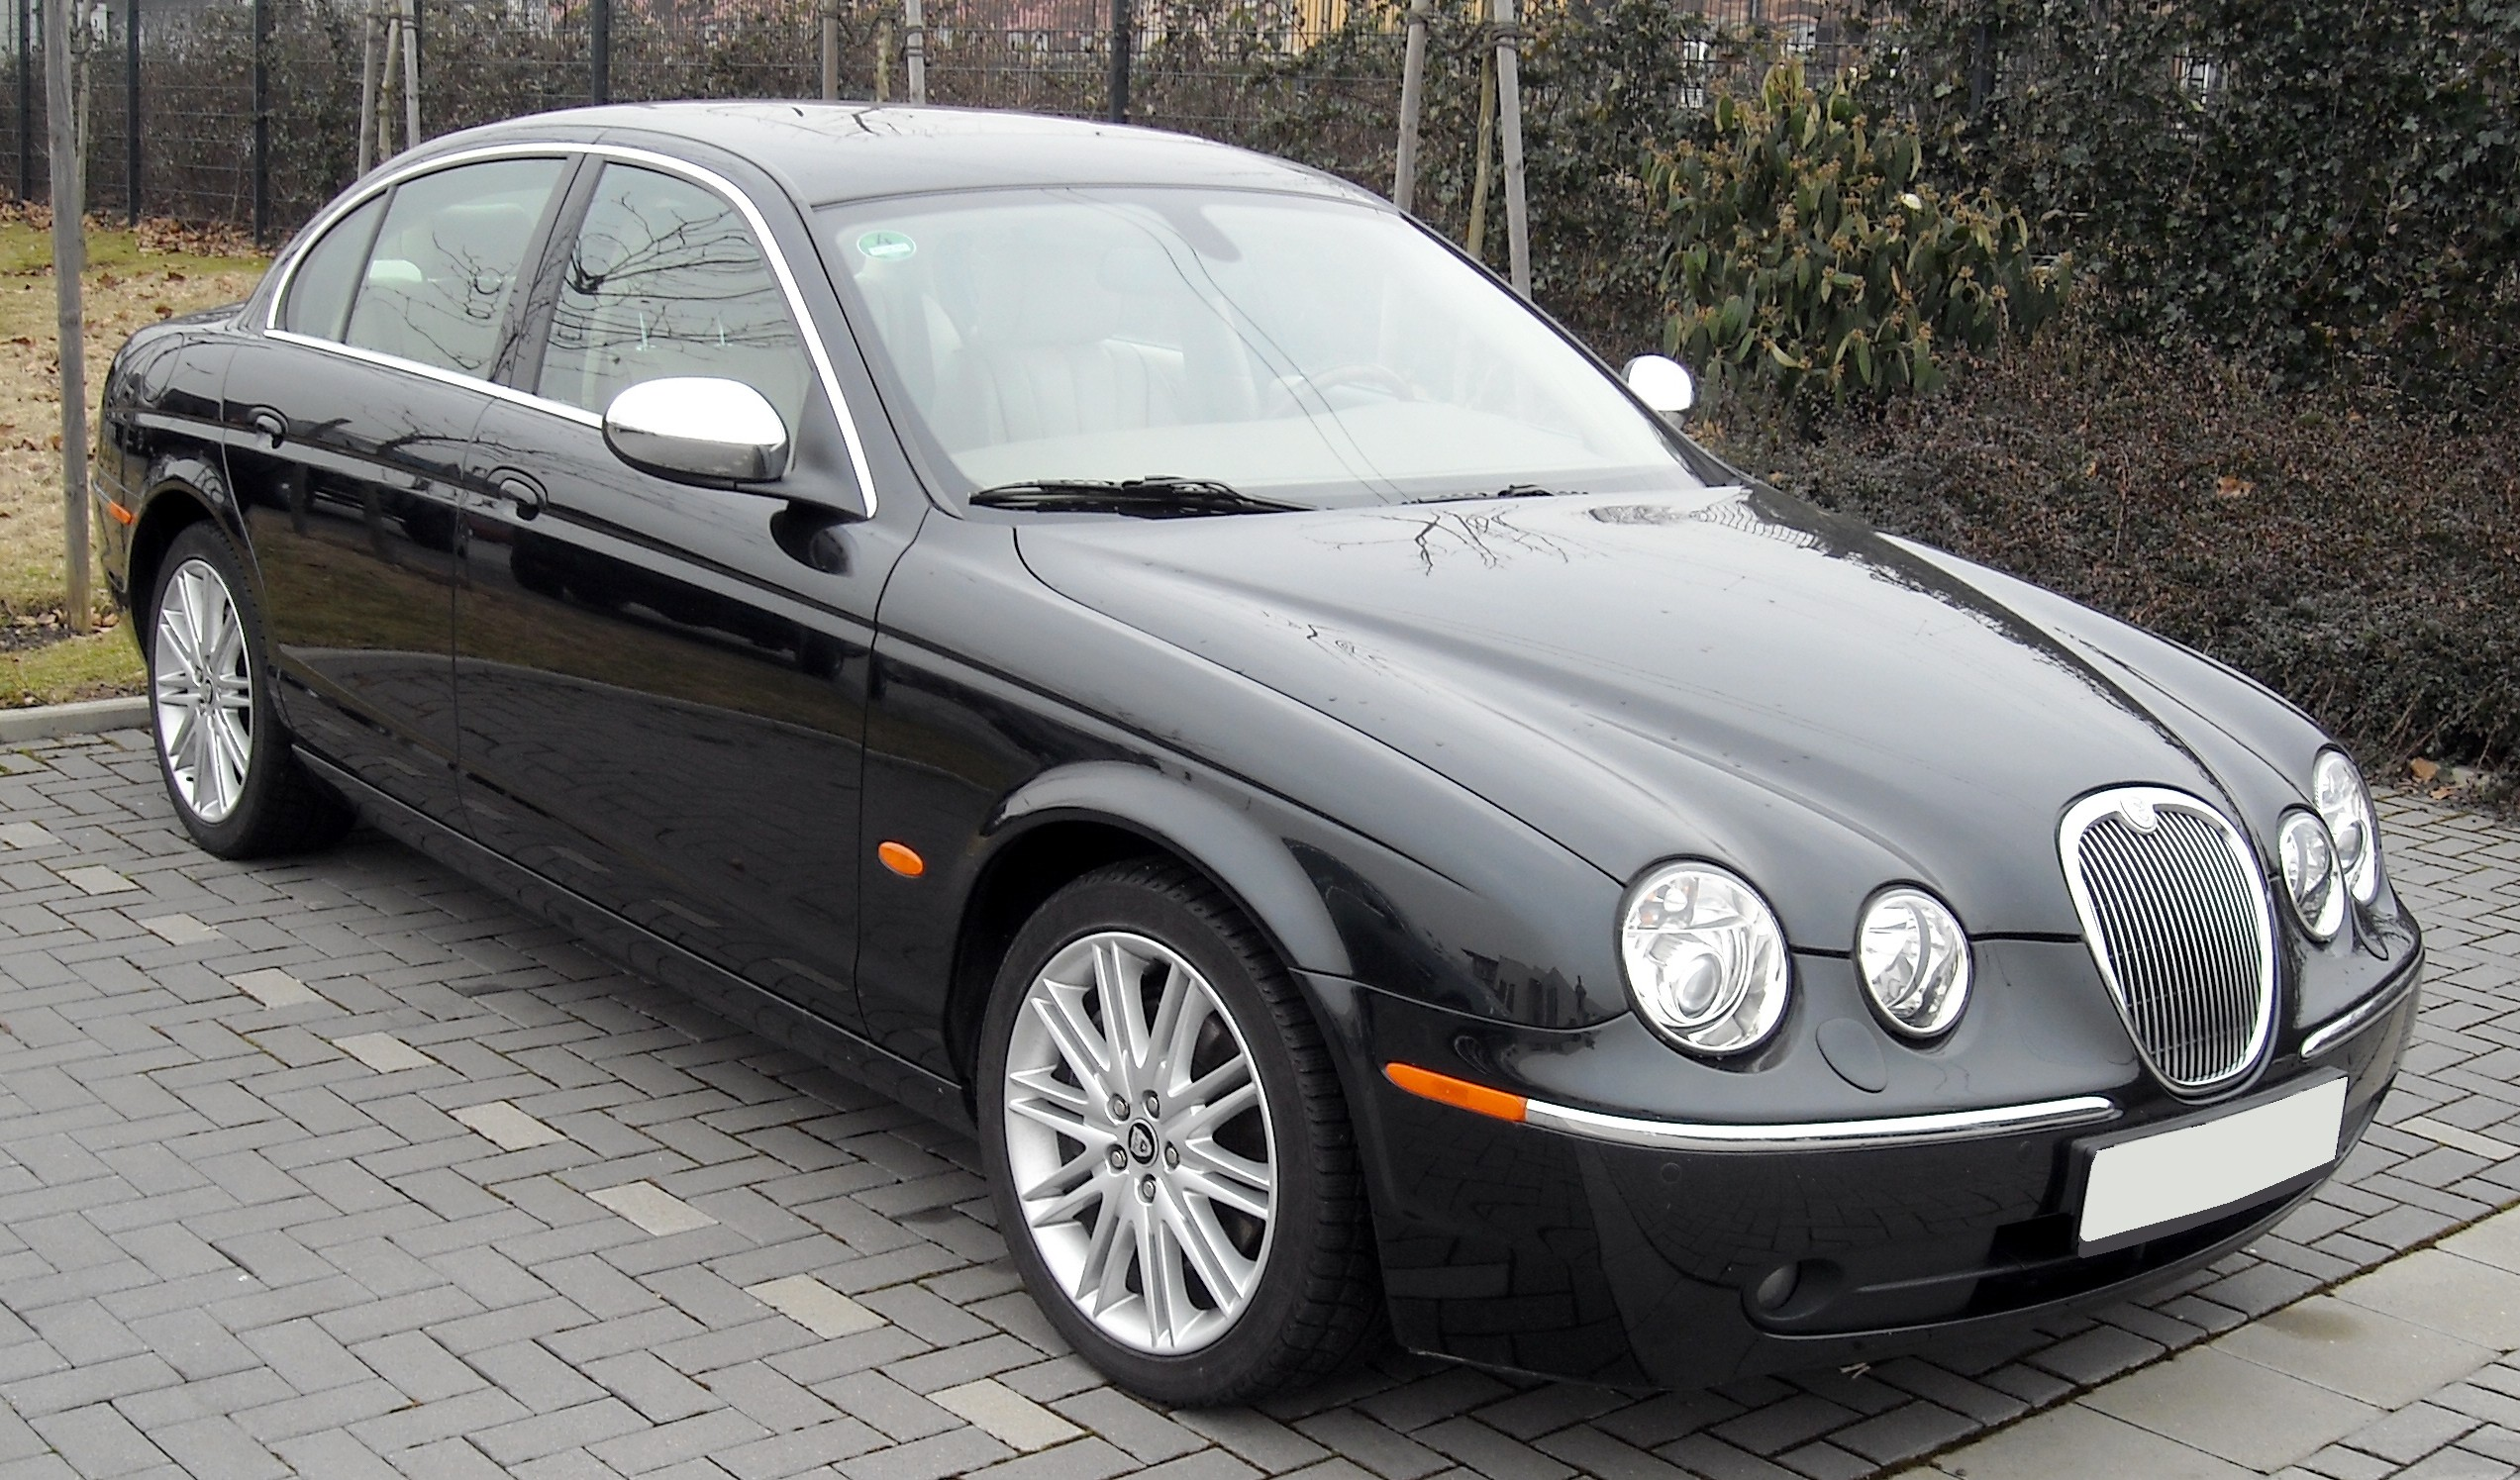 2008 Jaguar S-type #1